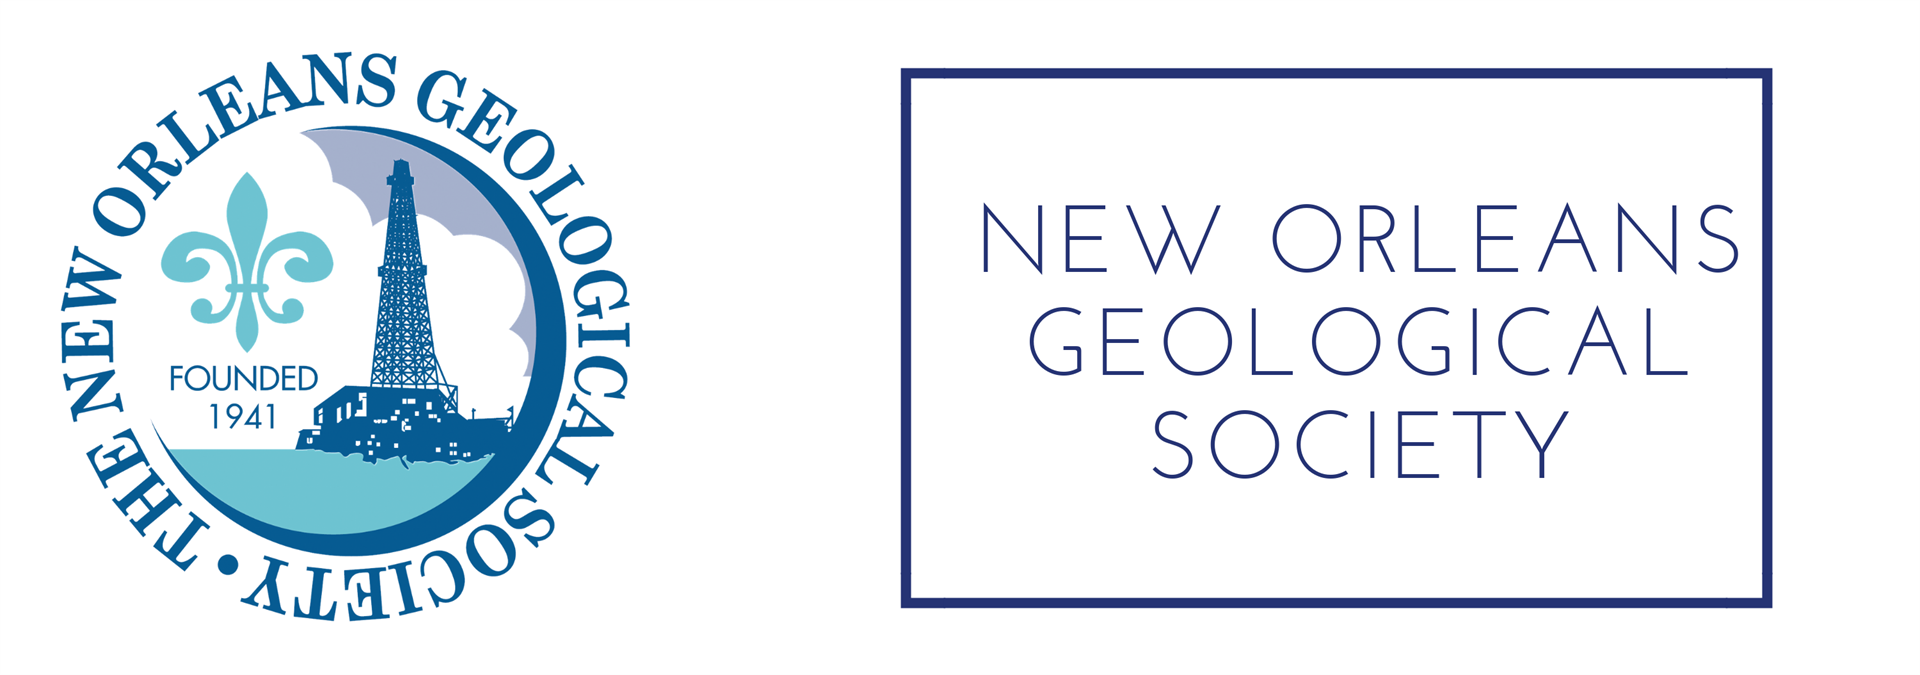 New Orleans Event Calendar 2022.New Orleans Geological Society Events